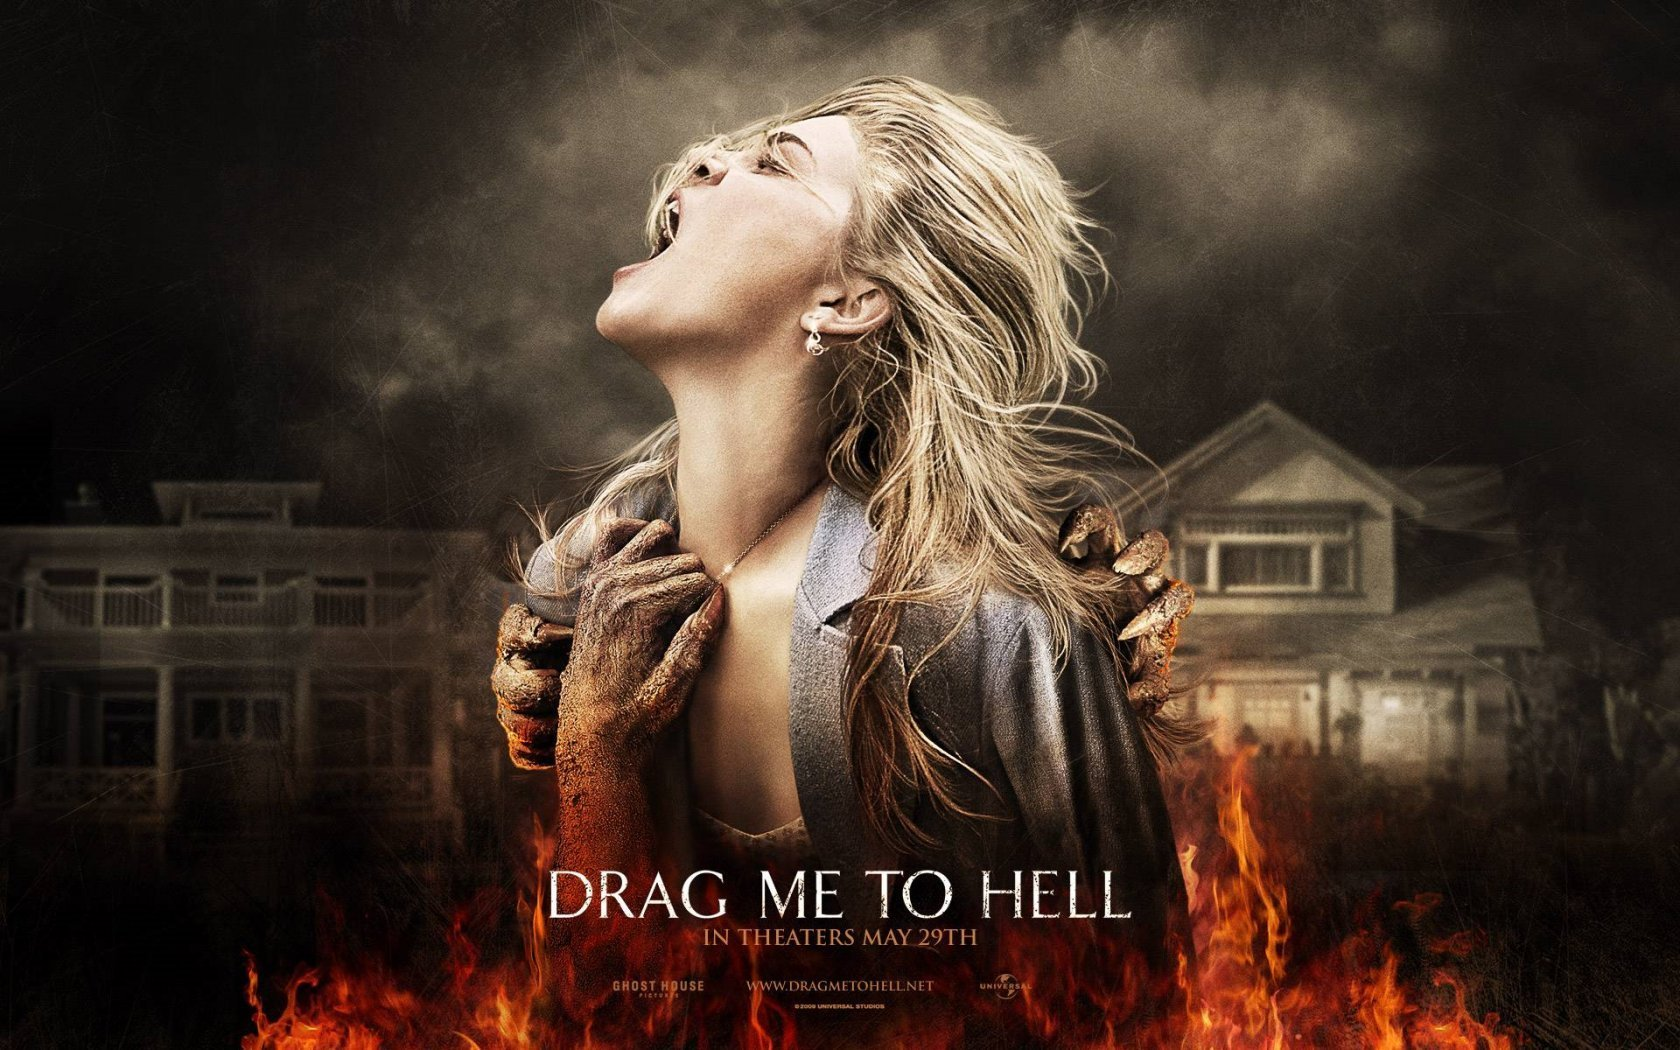 Drag Me To Hell Alison Lohman Wallpaper 7075884 Fanpop